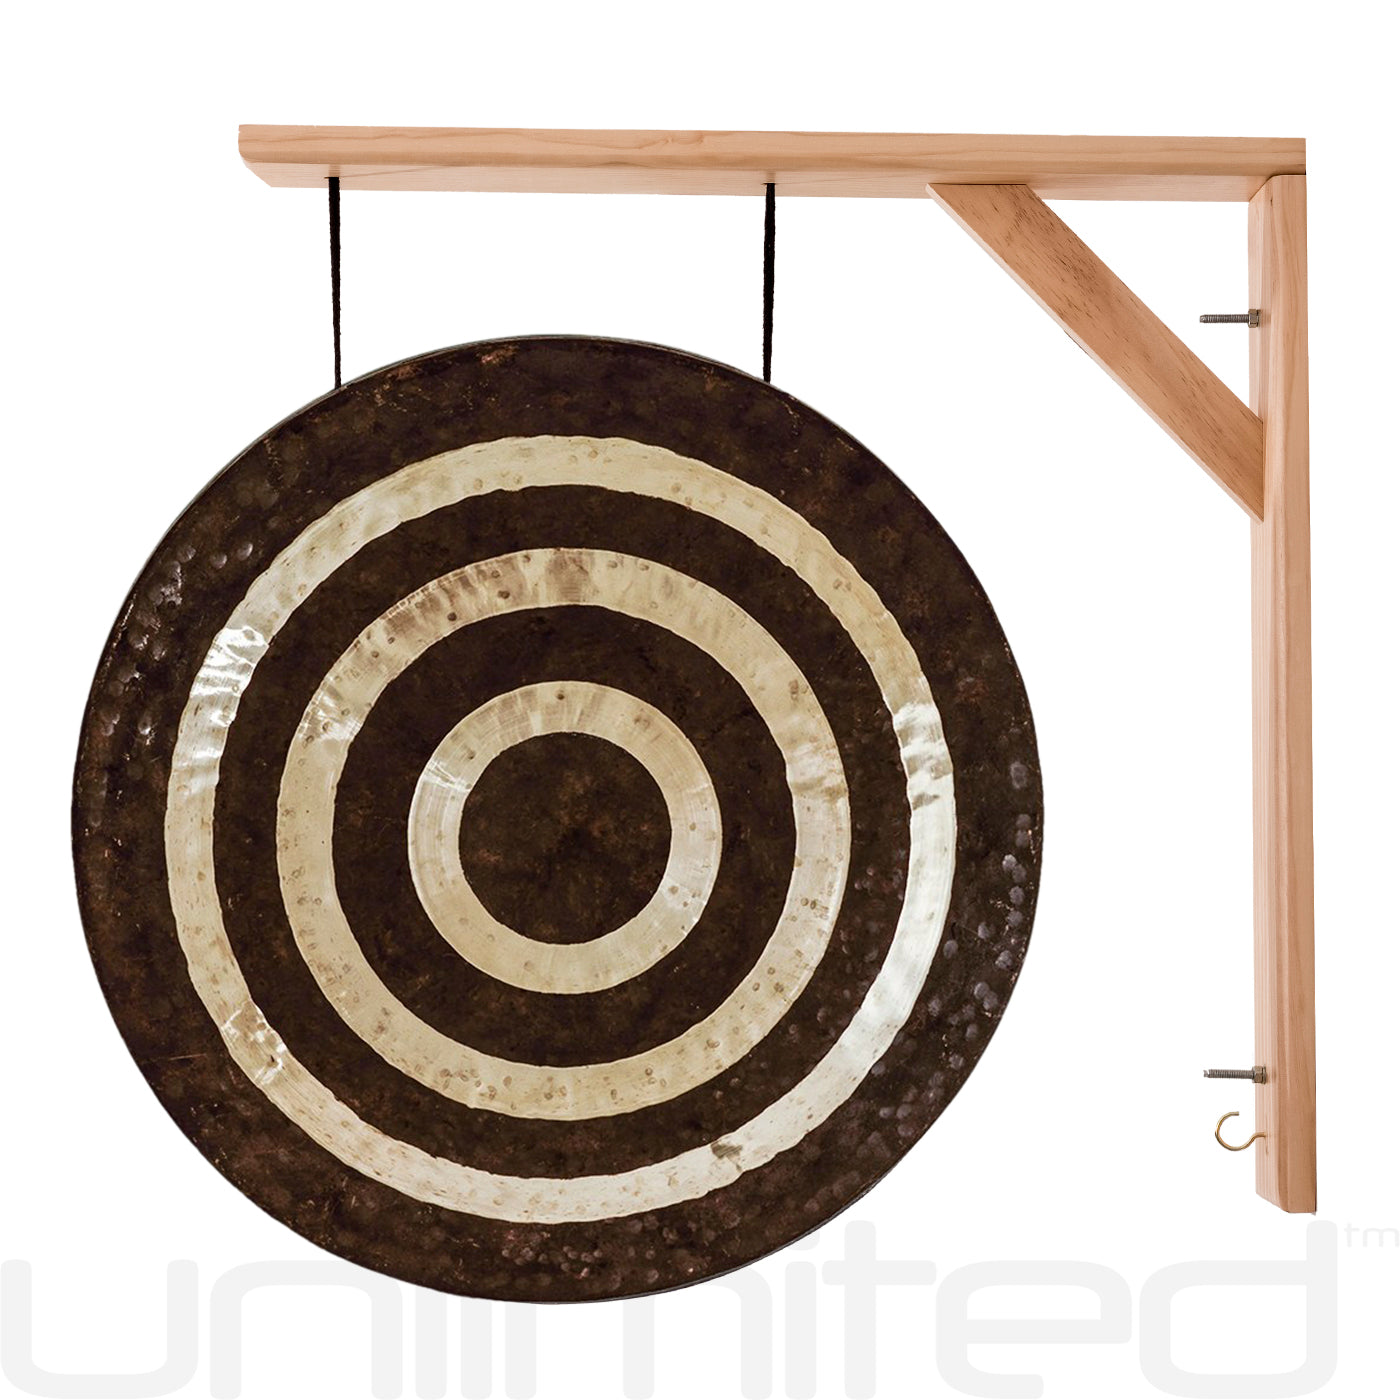 18 To 22 Gongs On The Great Wall Gong Hanger Natural Gongs